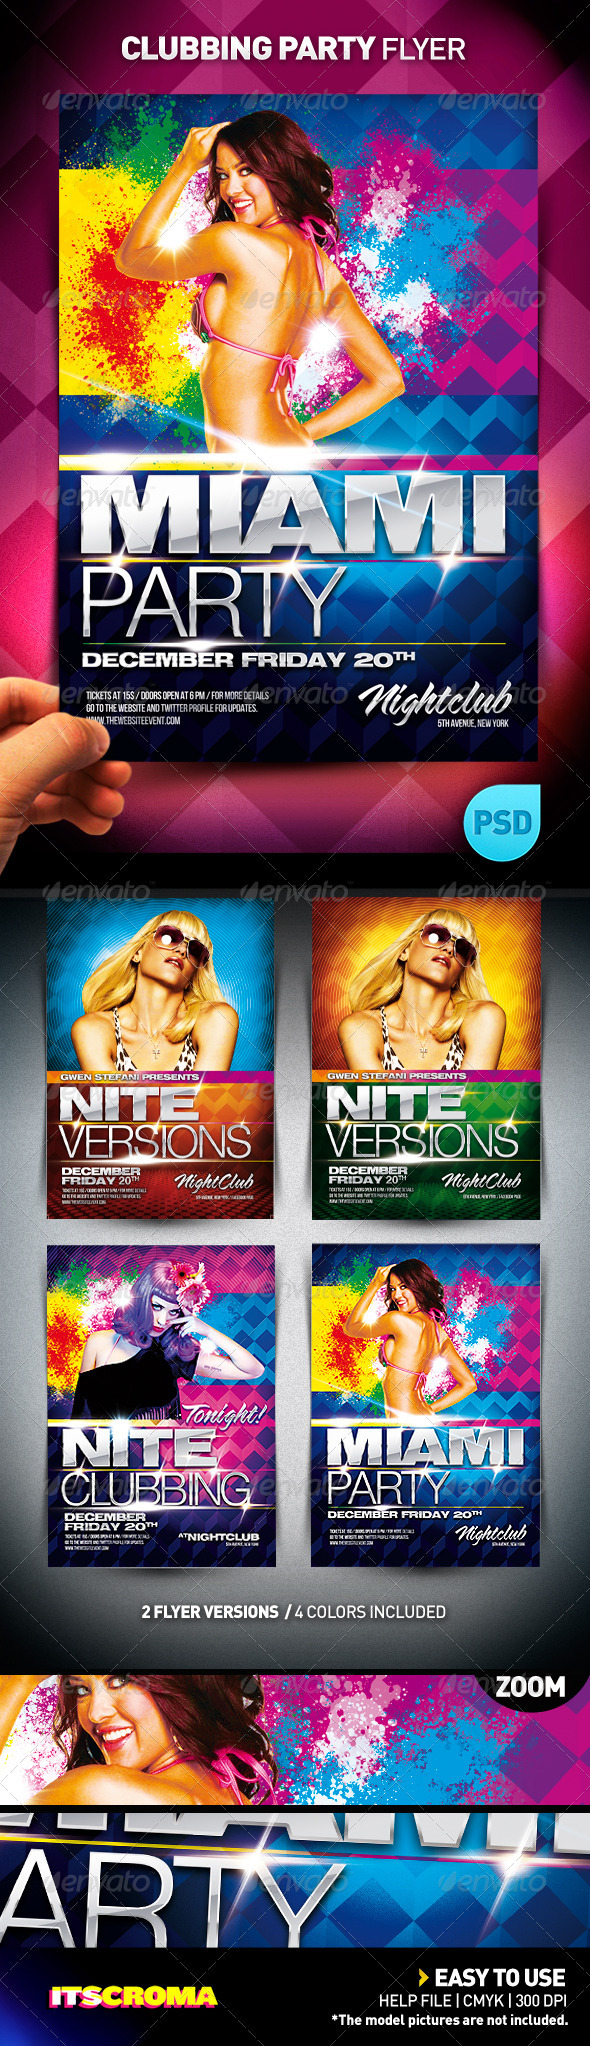 Clubbing Party Flyer - Clubs & Parties Events